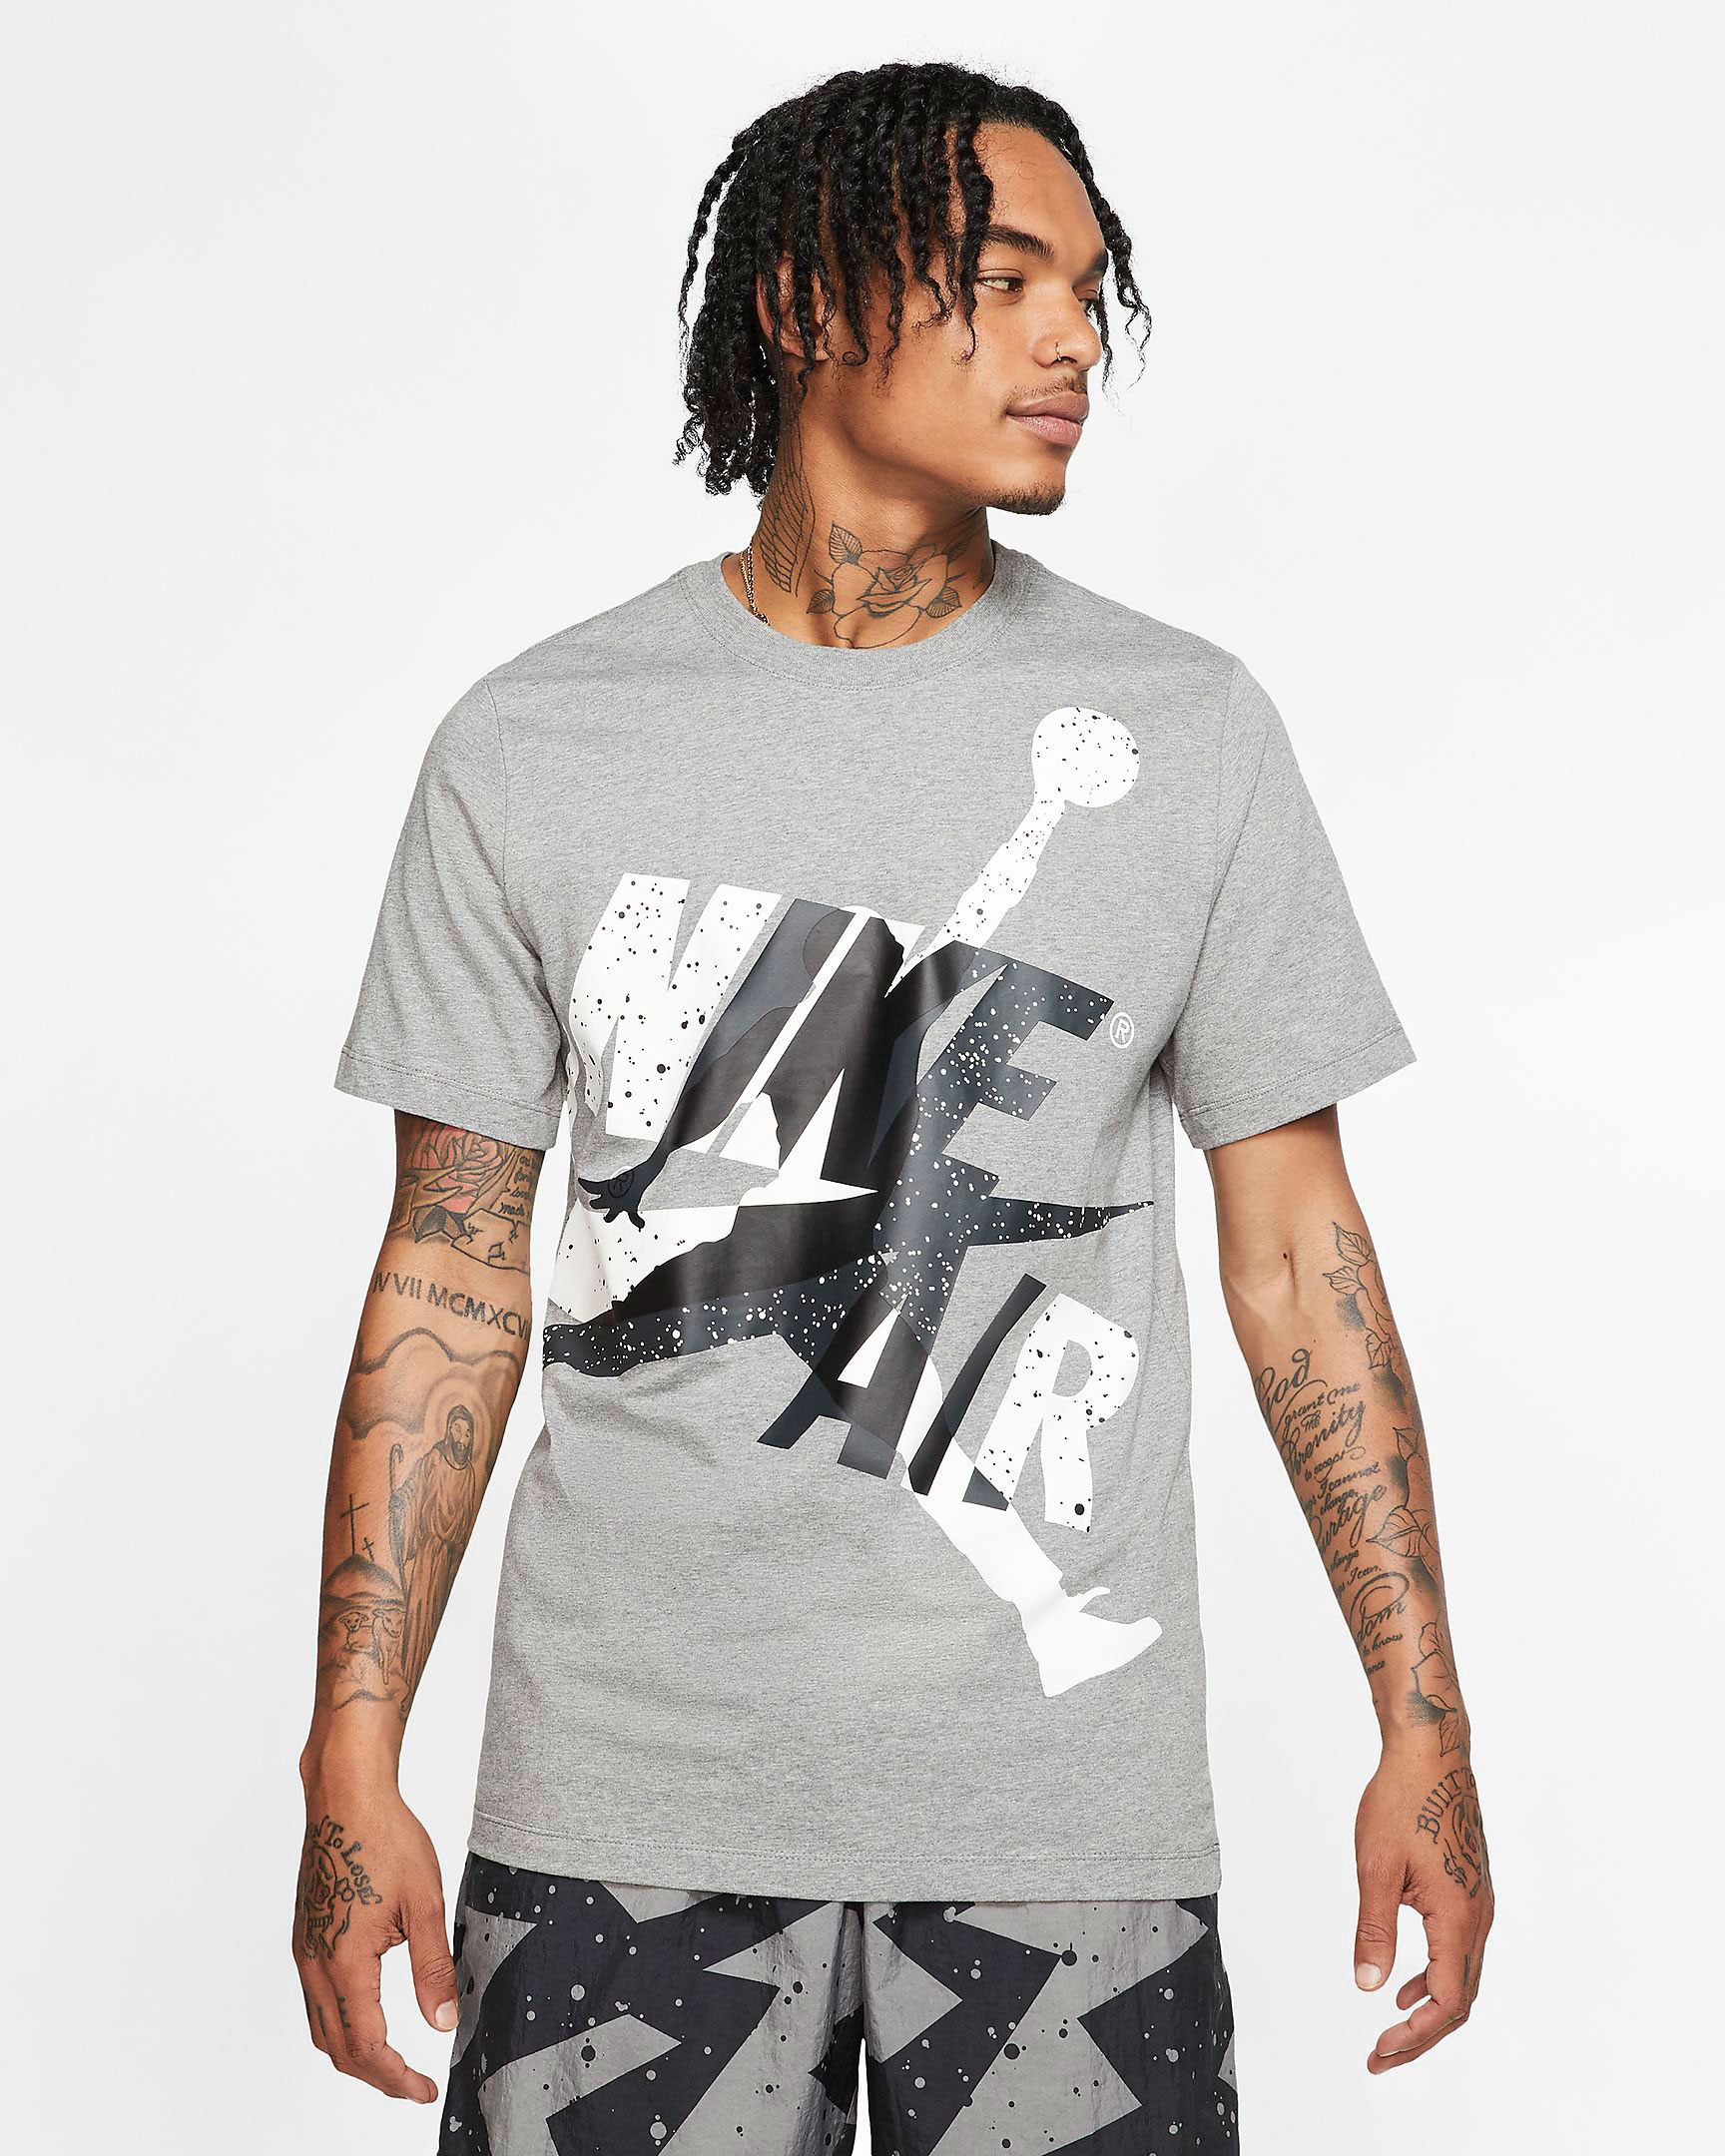 jordan-13-flint-grey-shirt-match